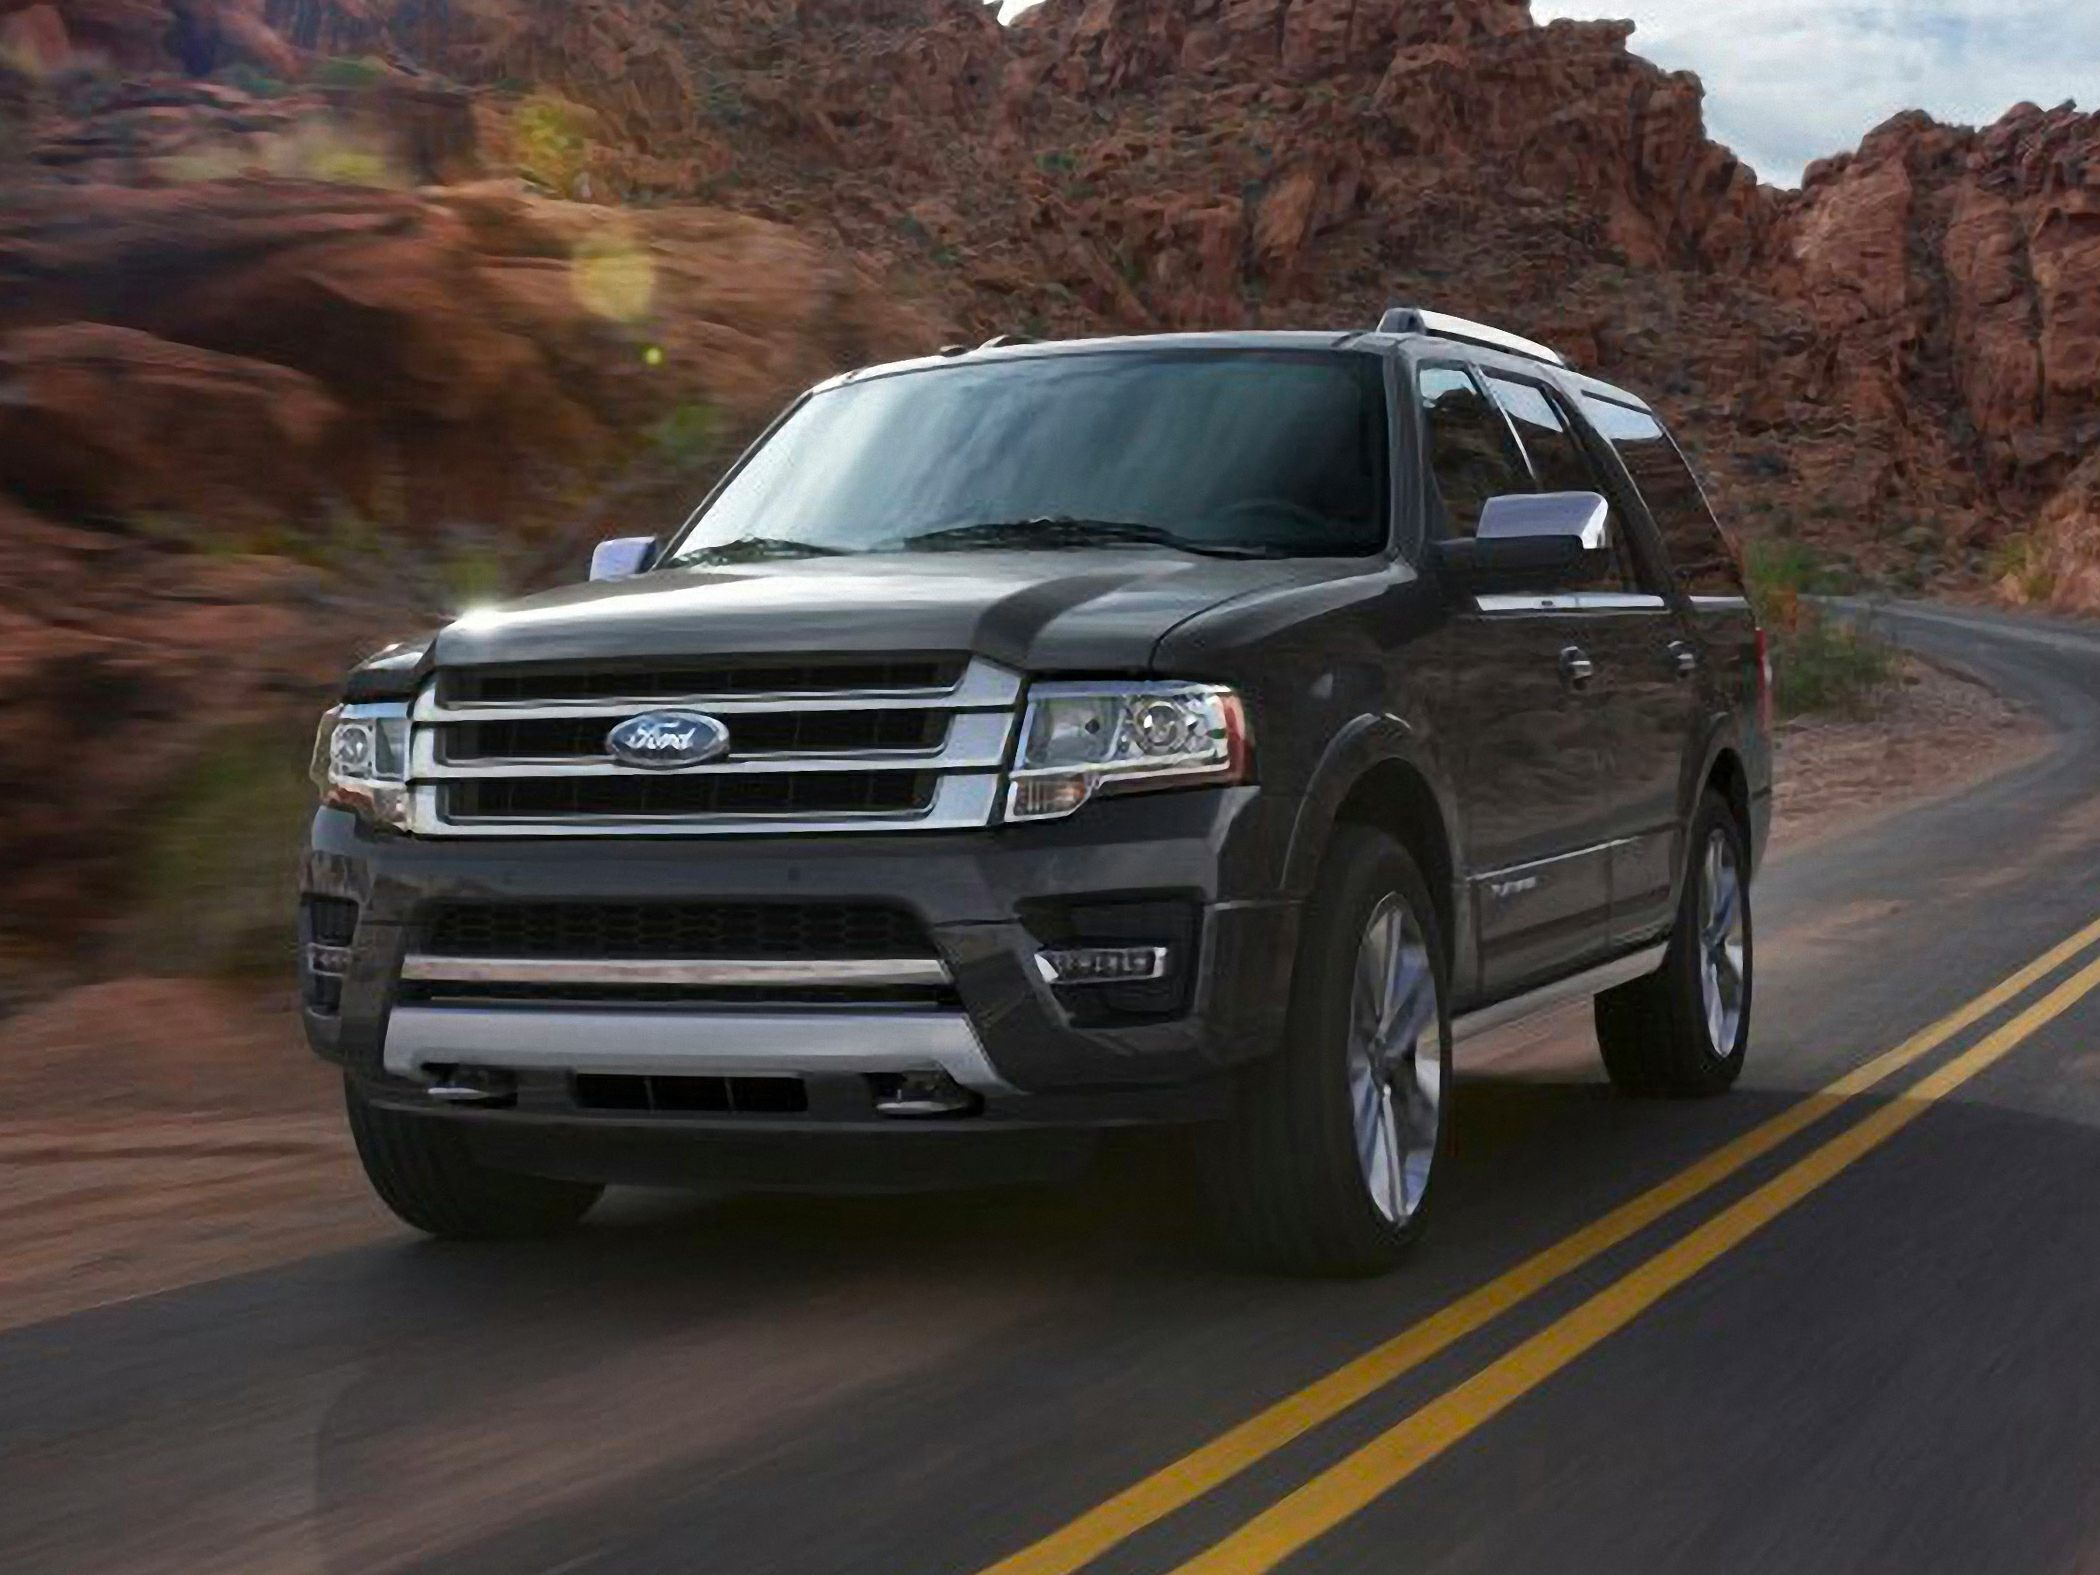 2017 ford expedition ssv